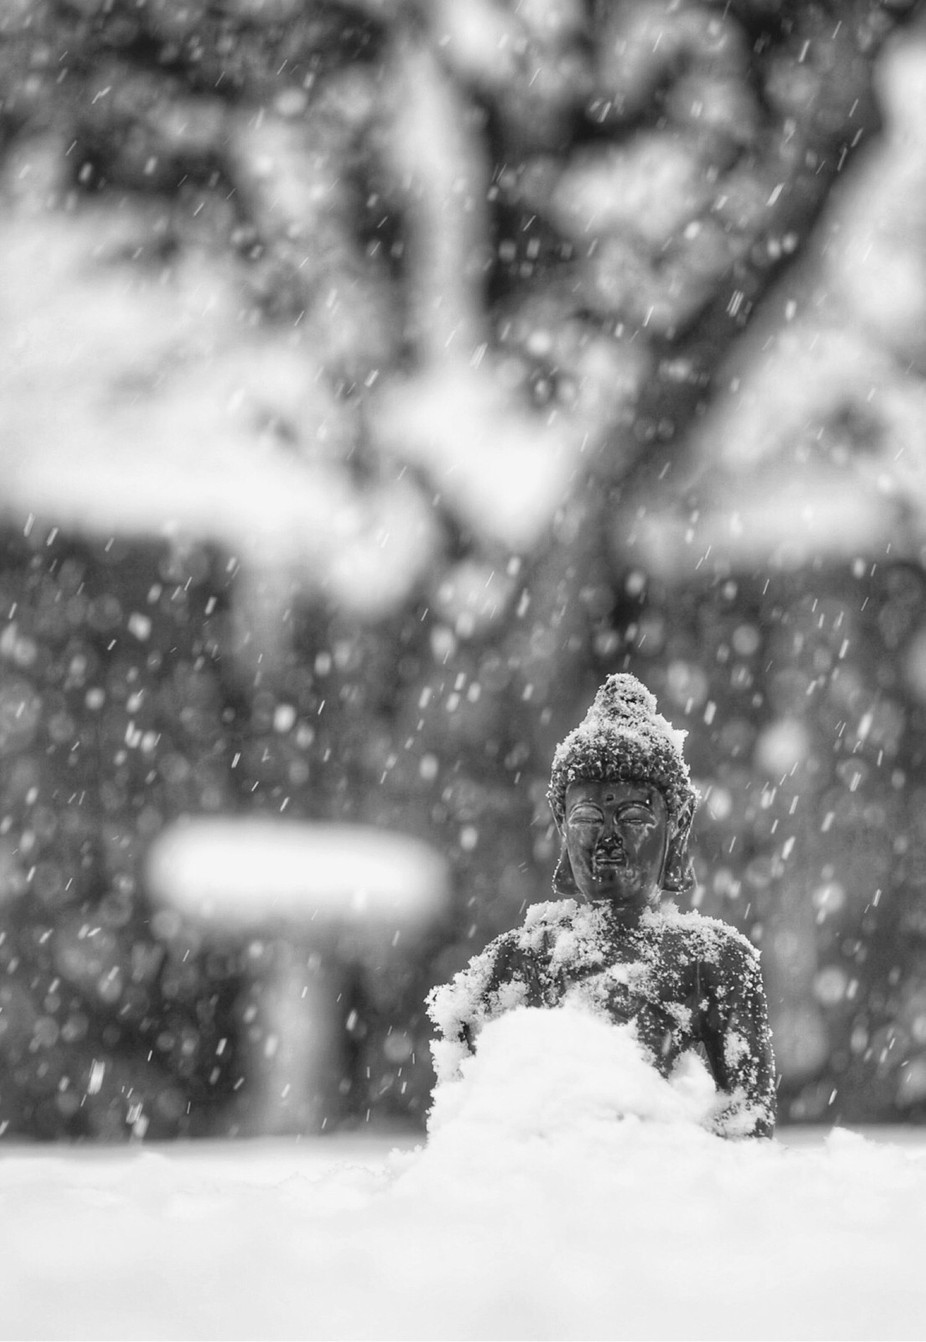 """silence in the snow""  by StephenLittlePhotography - Zen Photo Contest"